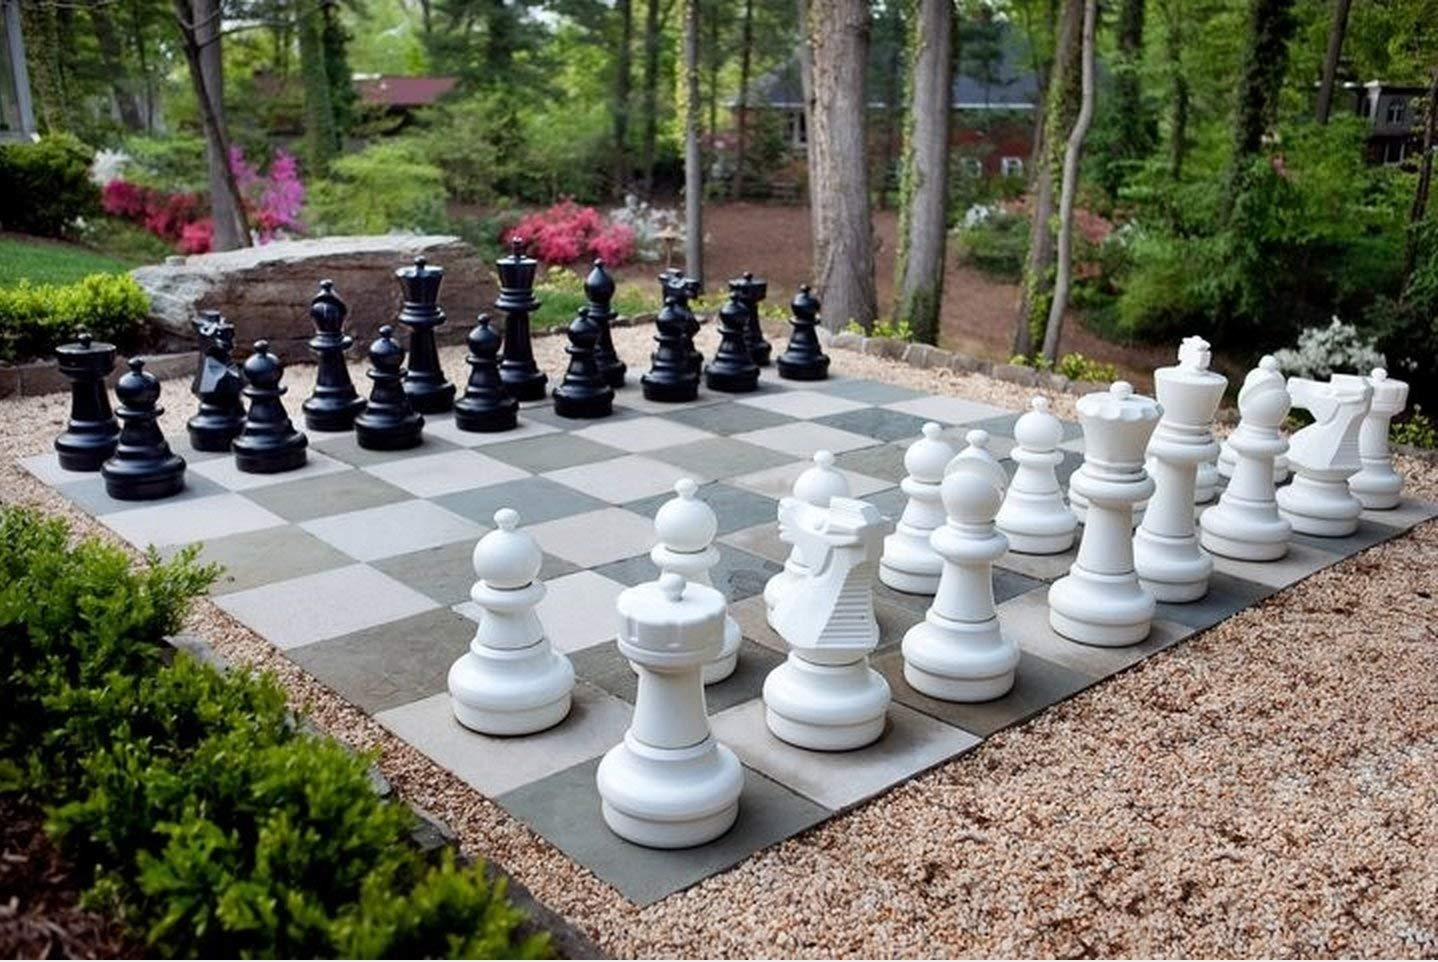 MegaChess Giant Chess Pieces Complete Set with 25 Inch Tall King - Black and White